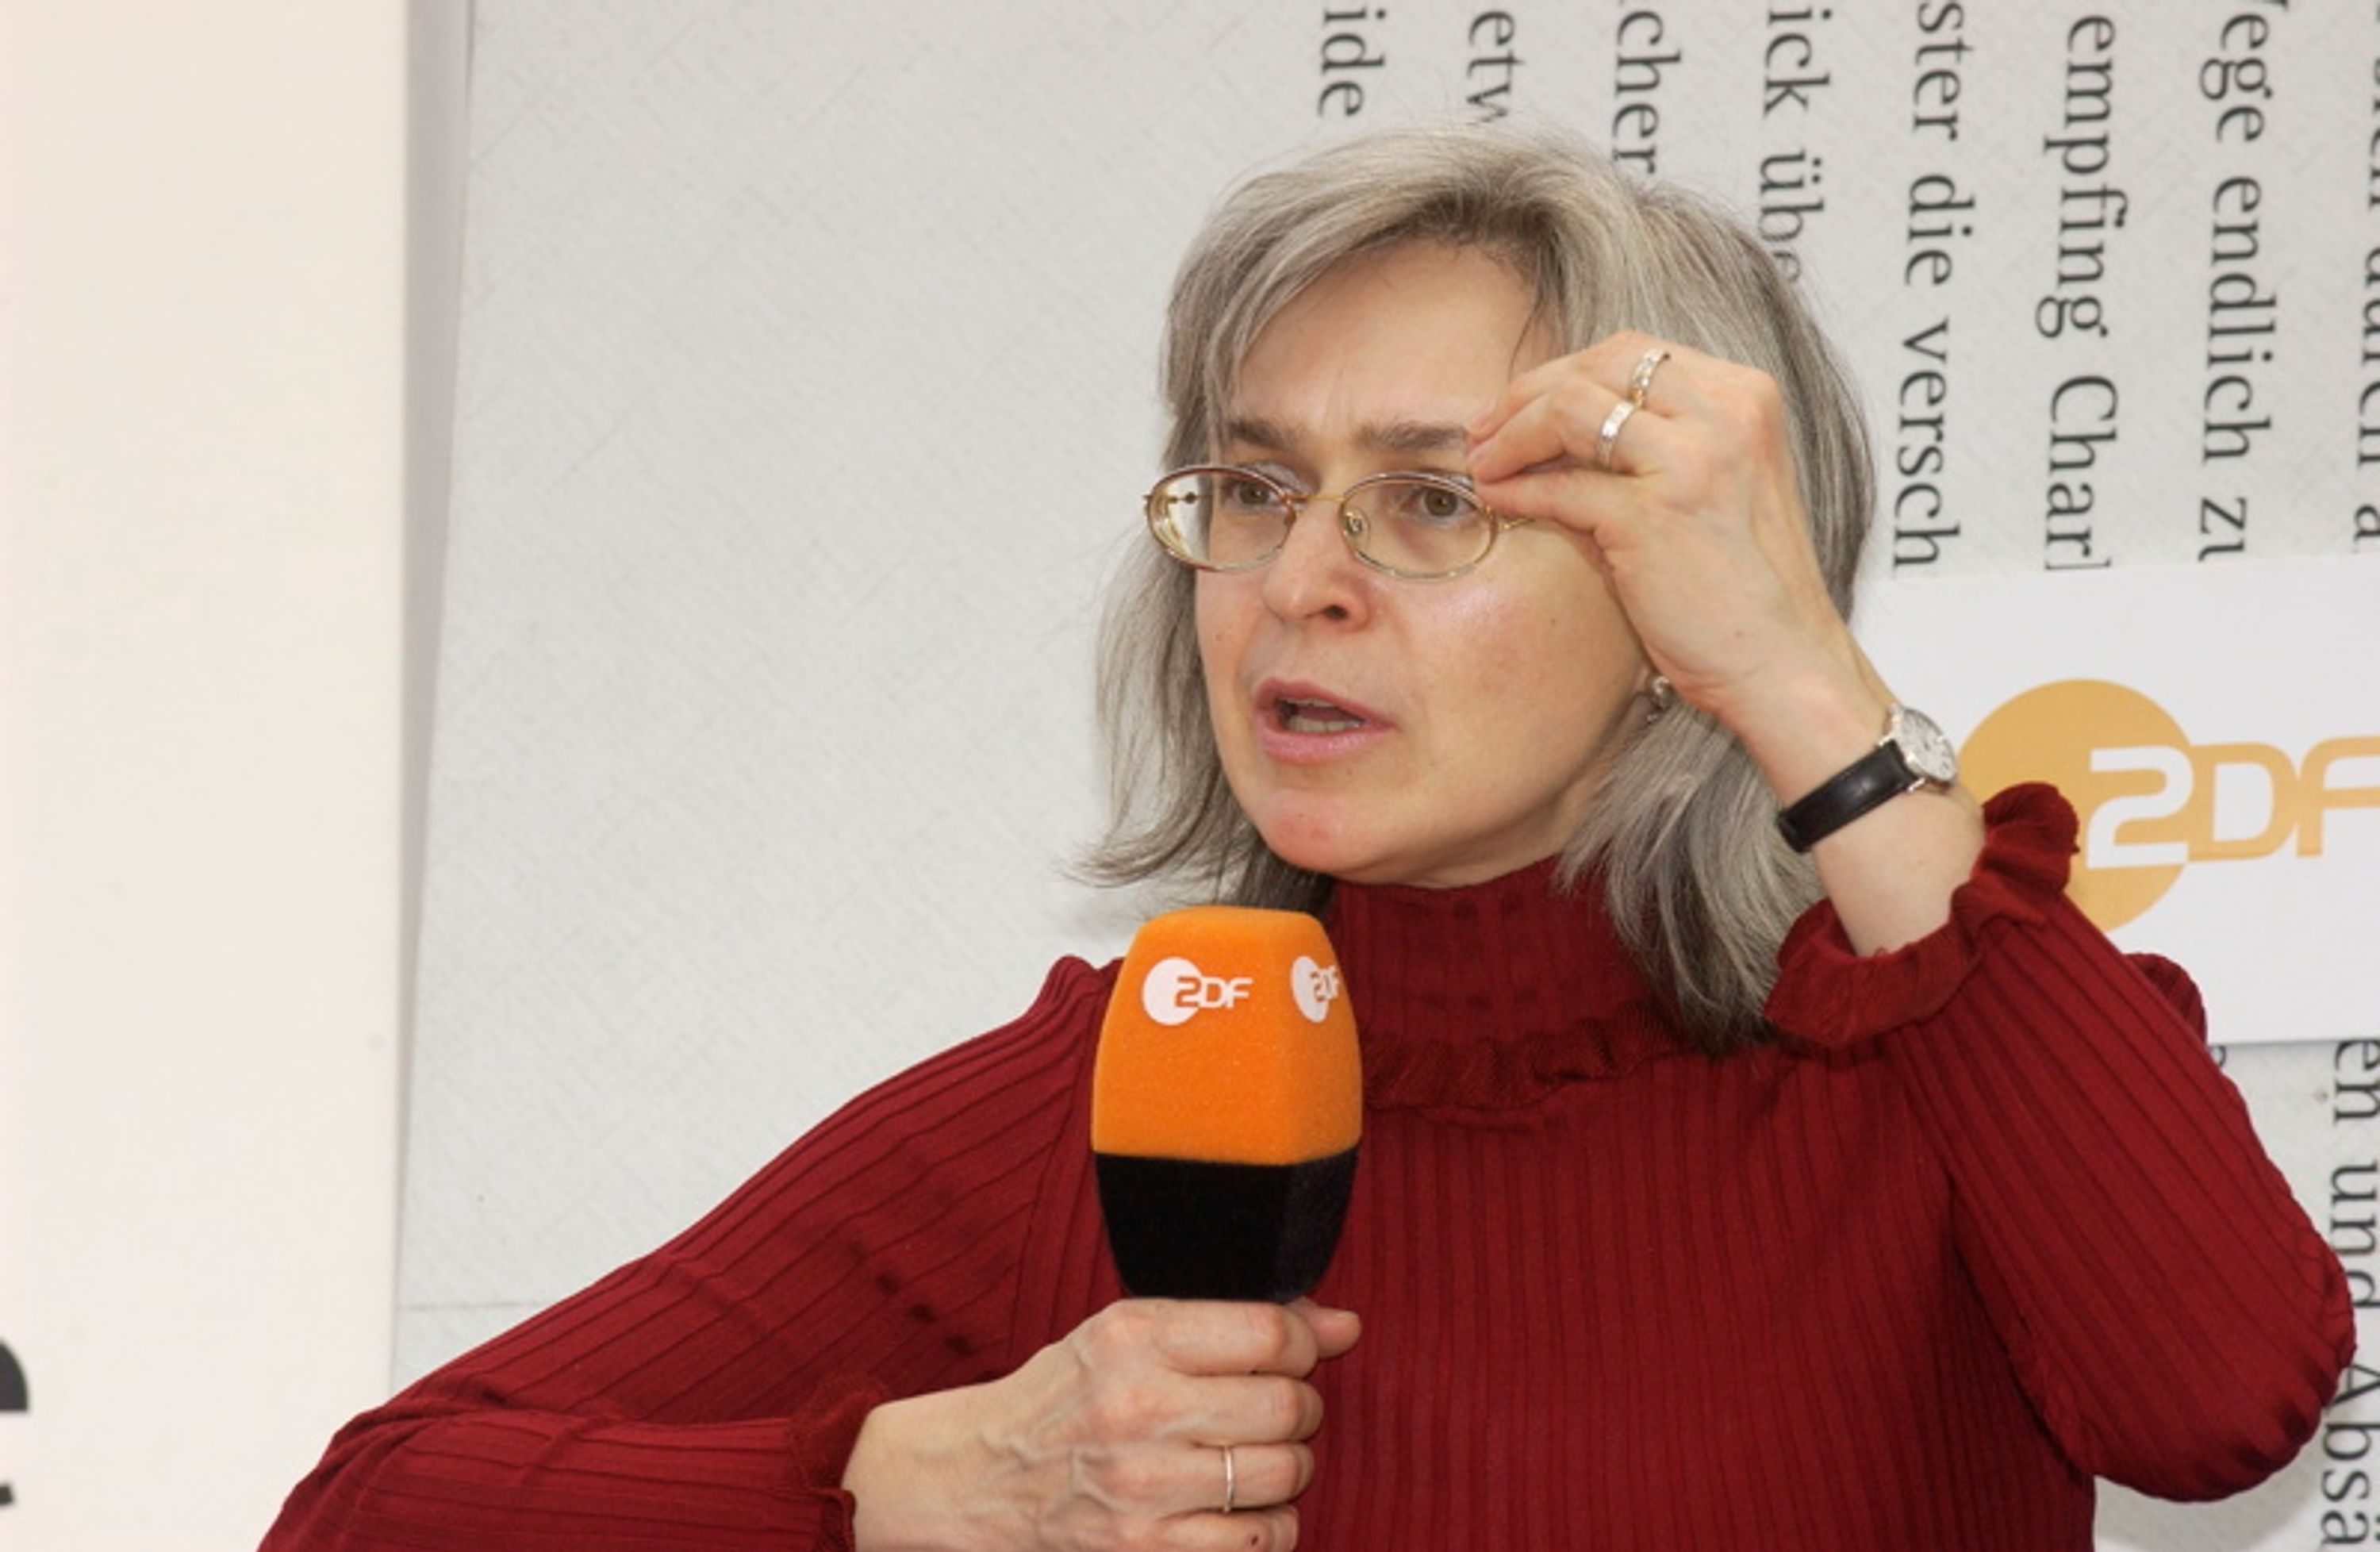 Anna Politkovskaya at the presentation of her book Putins Russia during the 2005 Leipzig Book Fair.